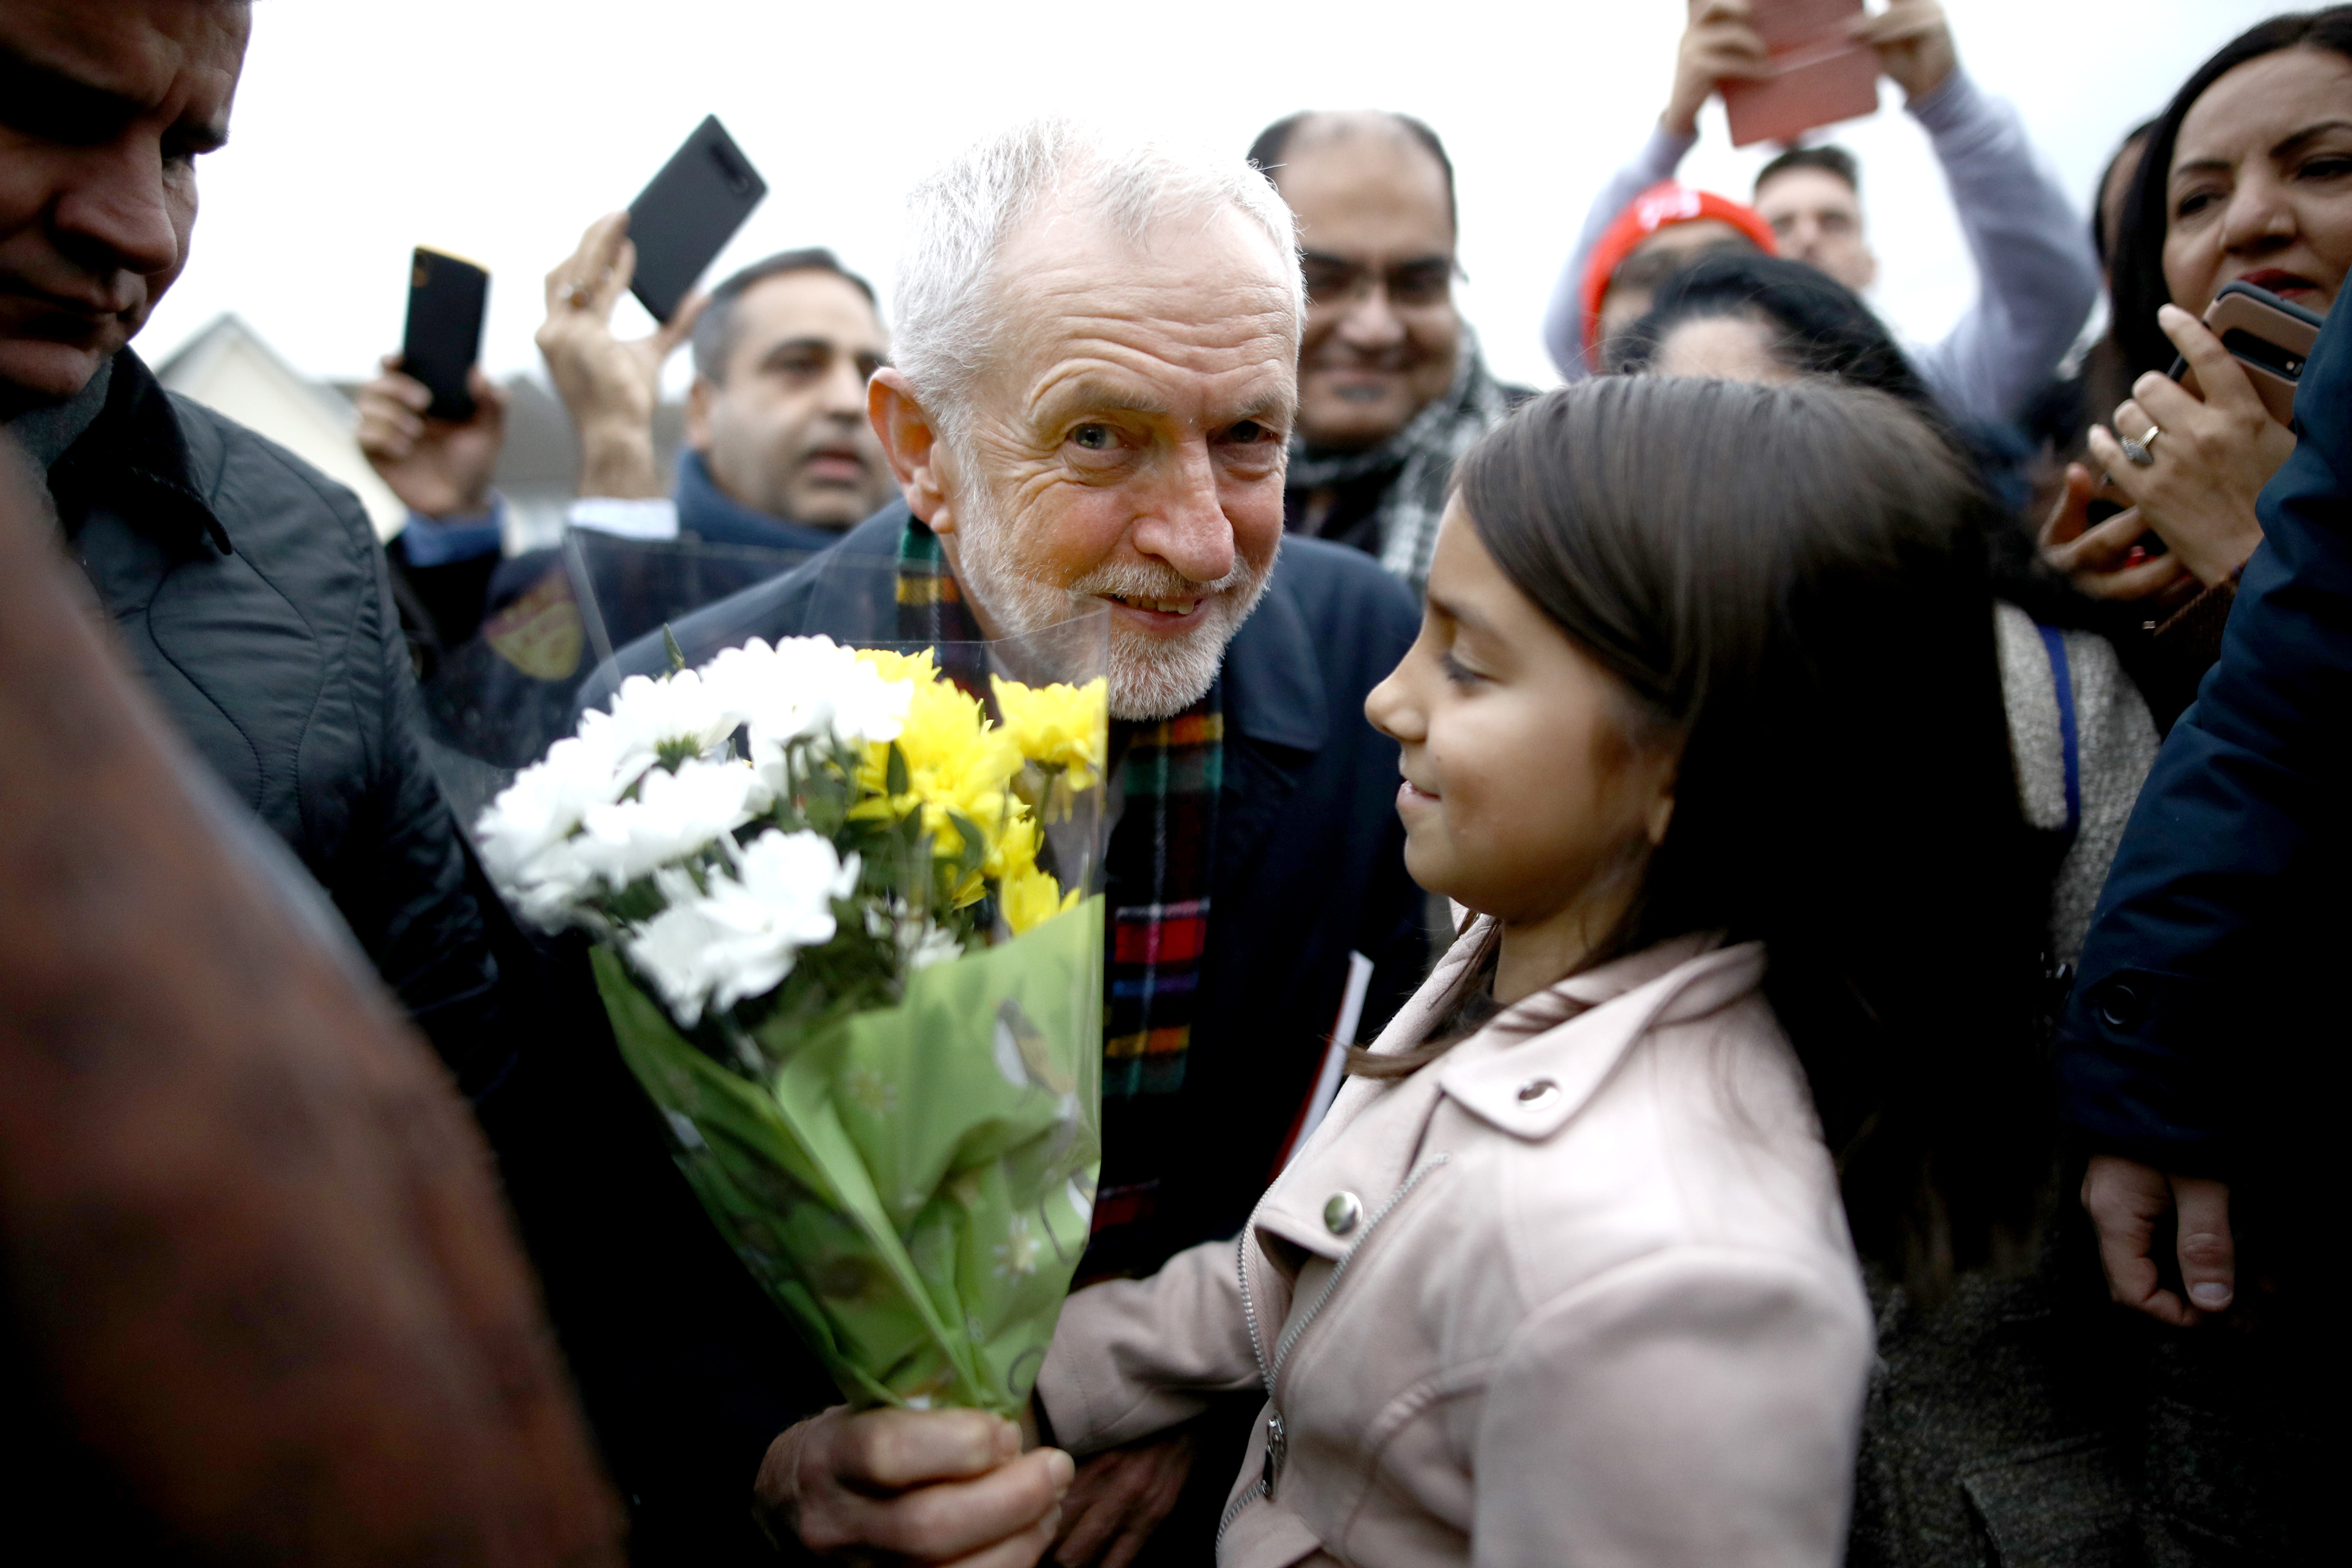 Labour Party leader Jeremy Corbyn holds some flowers as he meets supporters during a visit to Thurrock in Essex whilst on the General Election campaign trail.